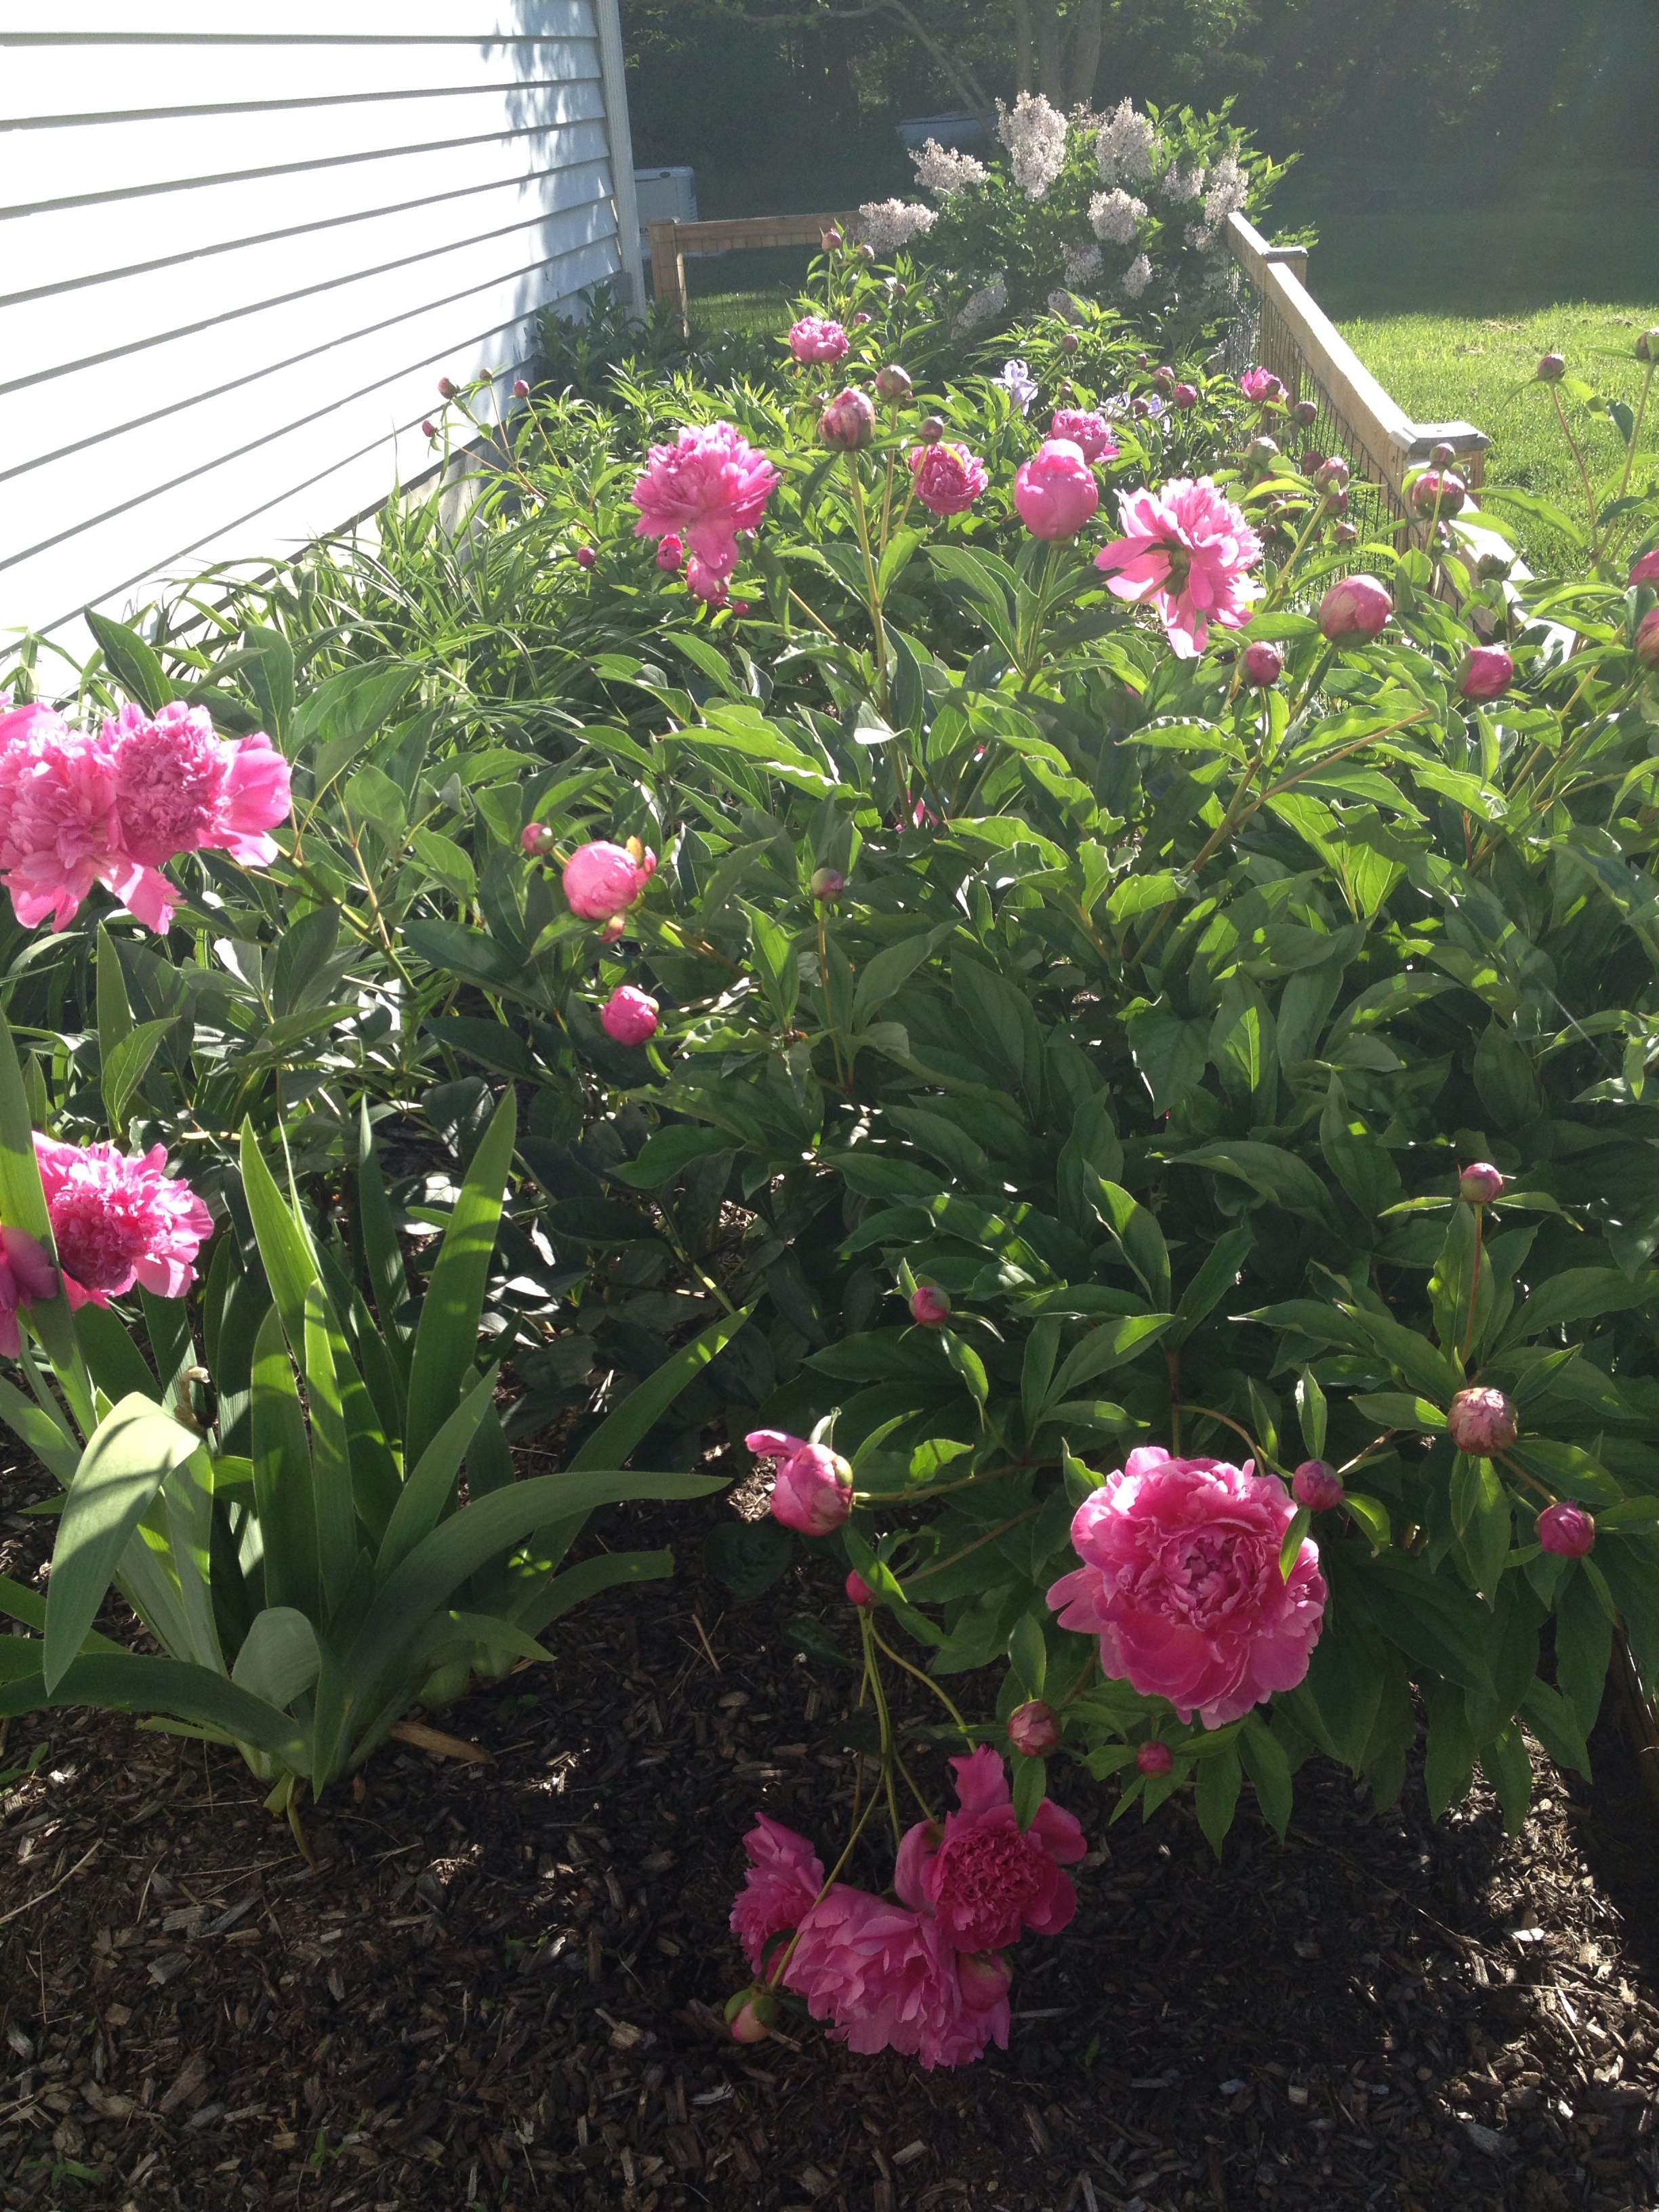 Fragrant Spring peonies.  I miss Spring already.